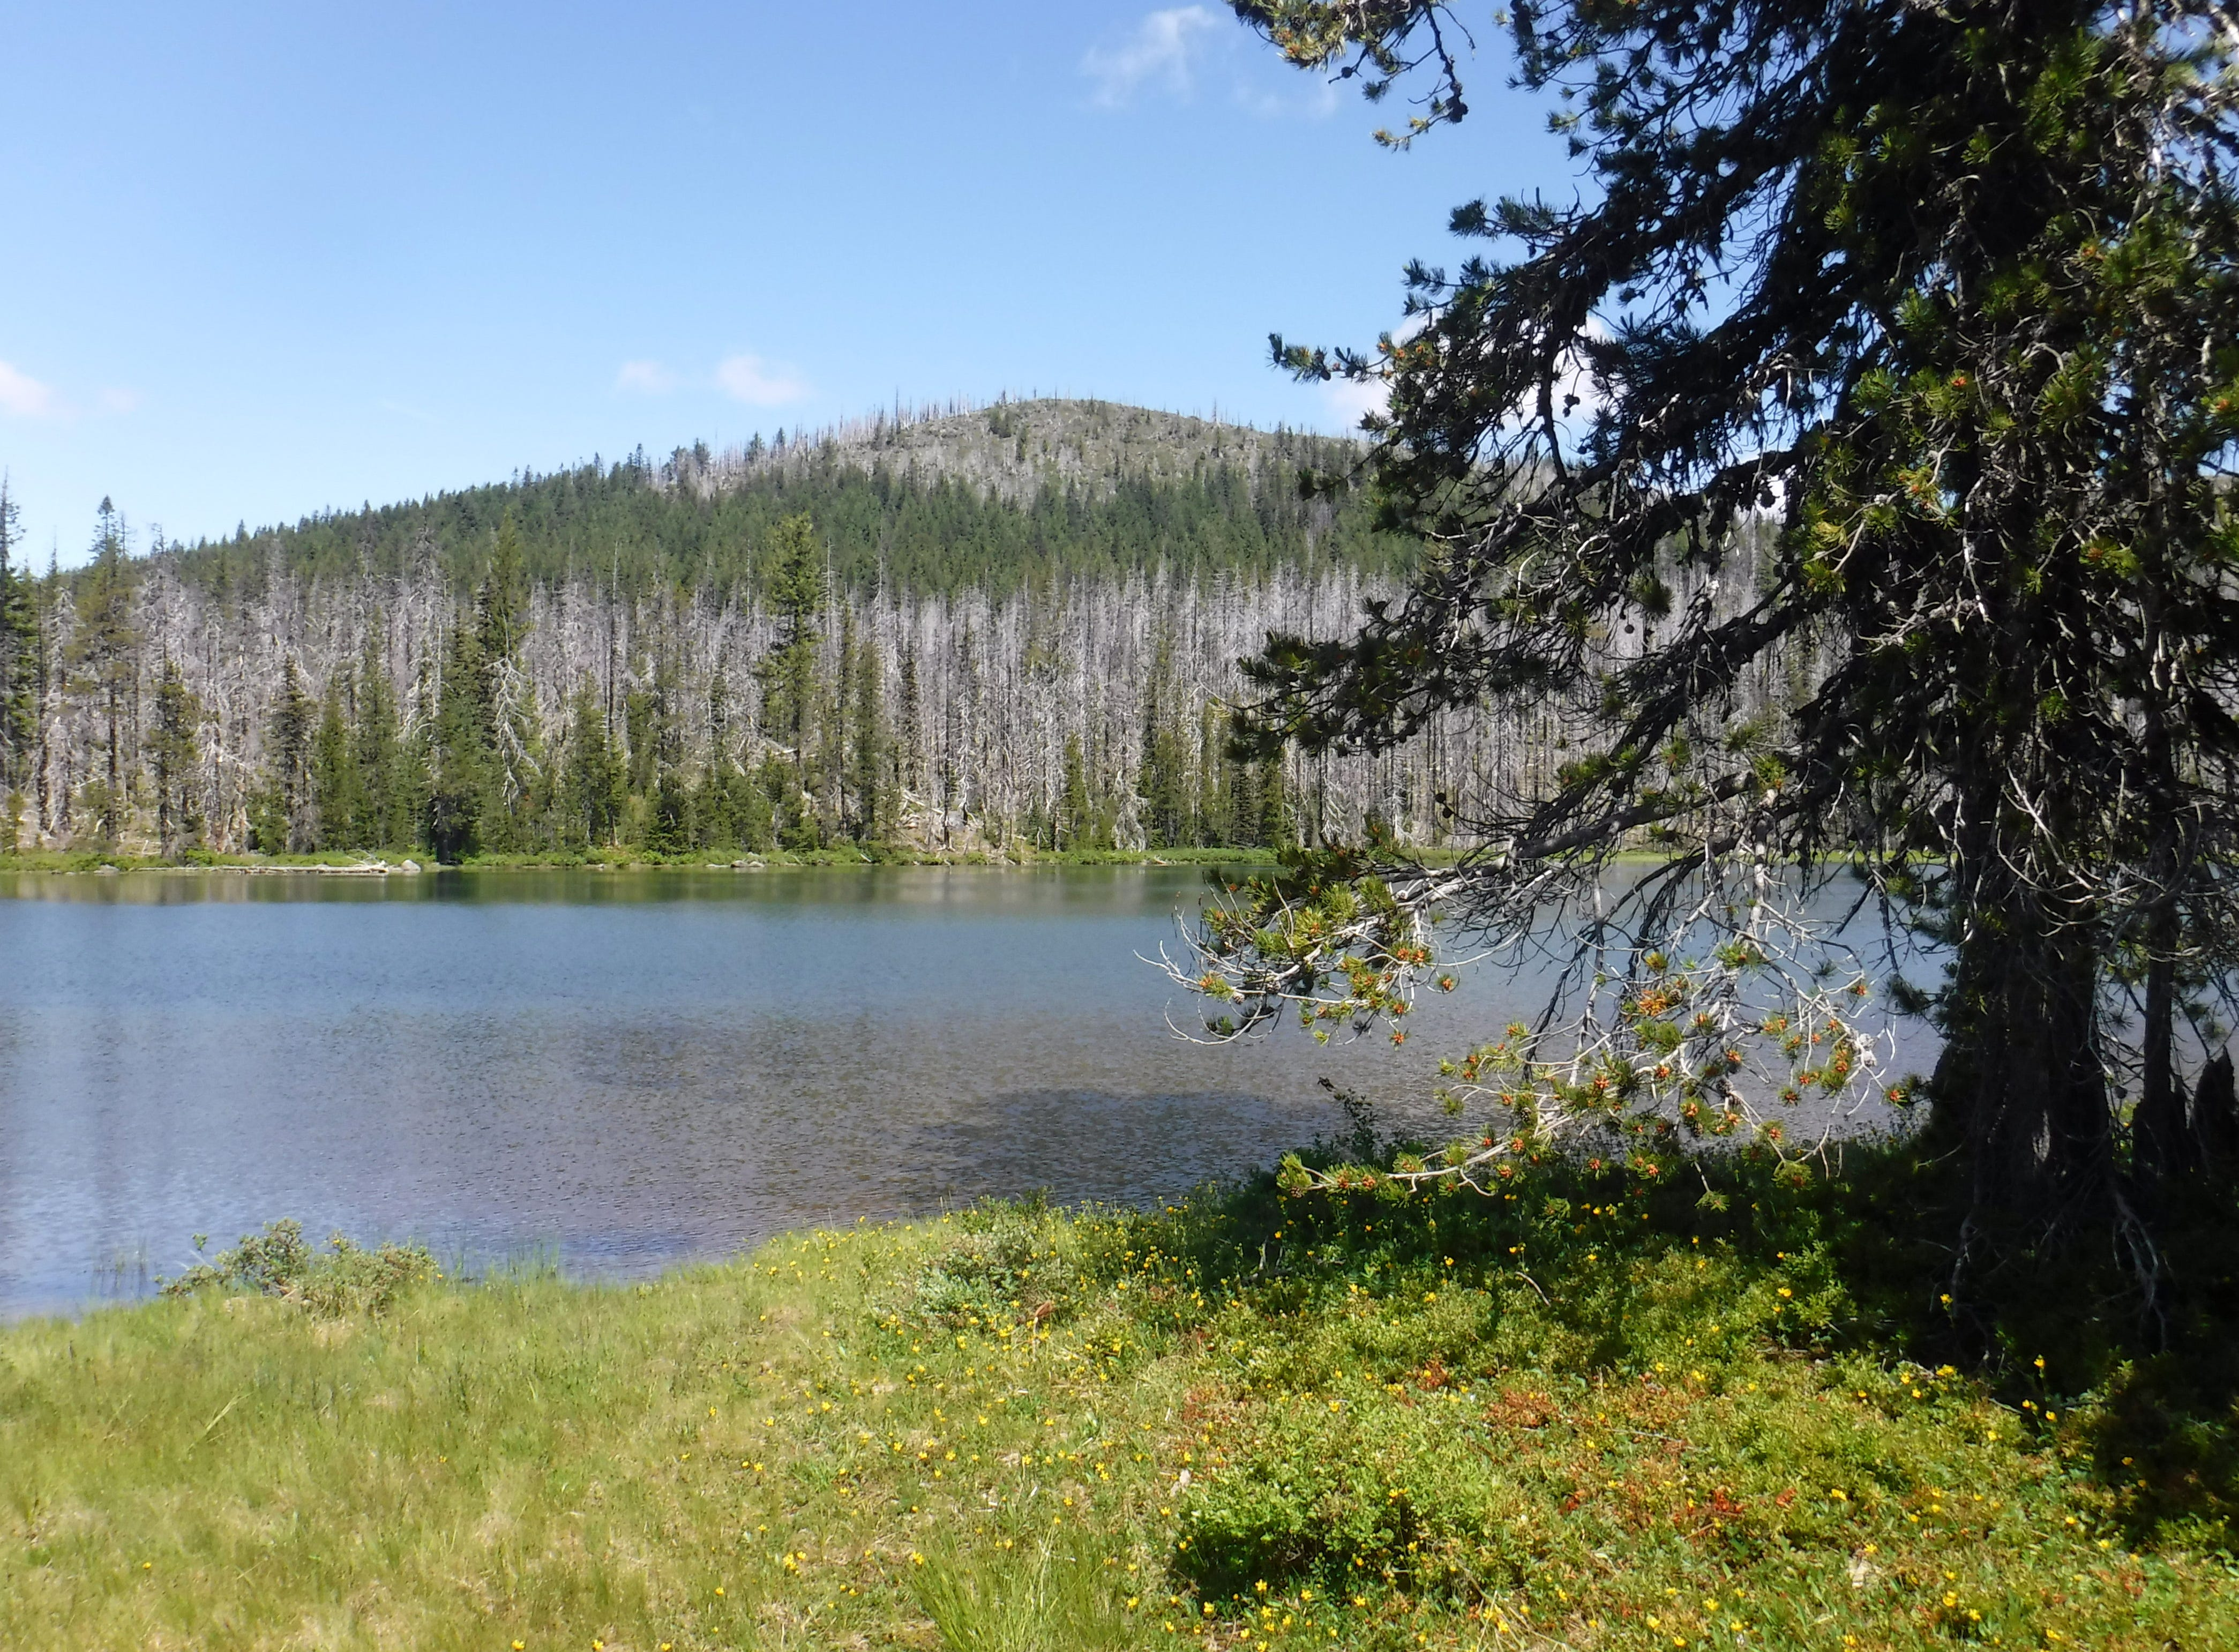 Charred trees are seen in the view north with from the third Patjens Lake.